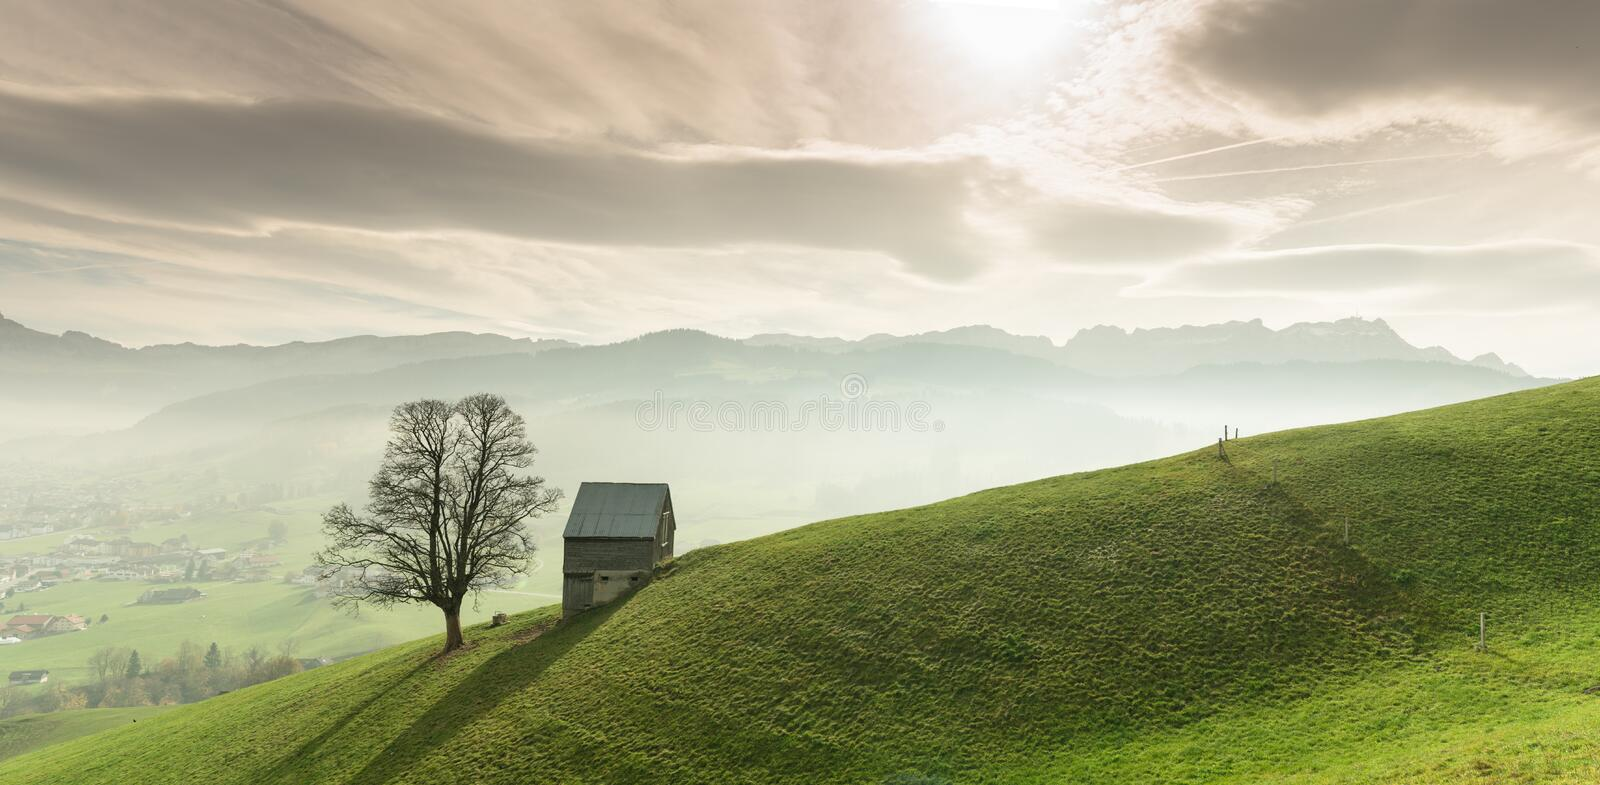 Idyllic and peaceful mountain landscape with a secluded wooden barn and lone tree on a grassy hillside and a great view of the Swi stock image